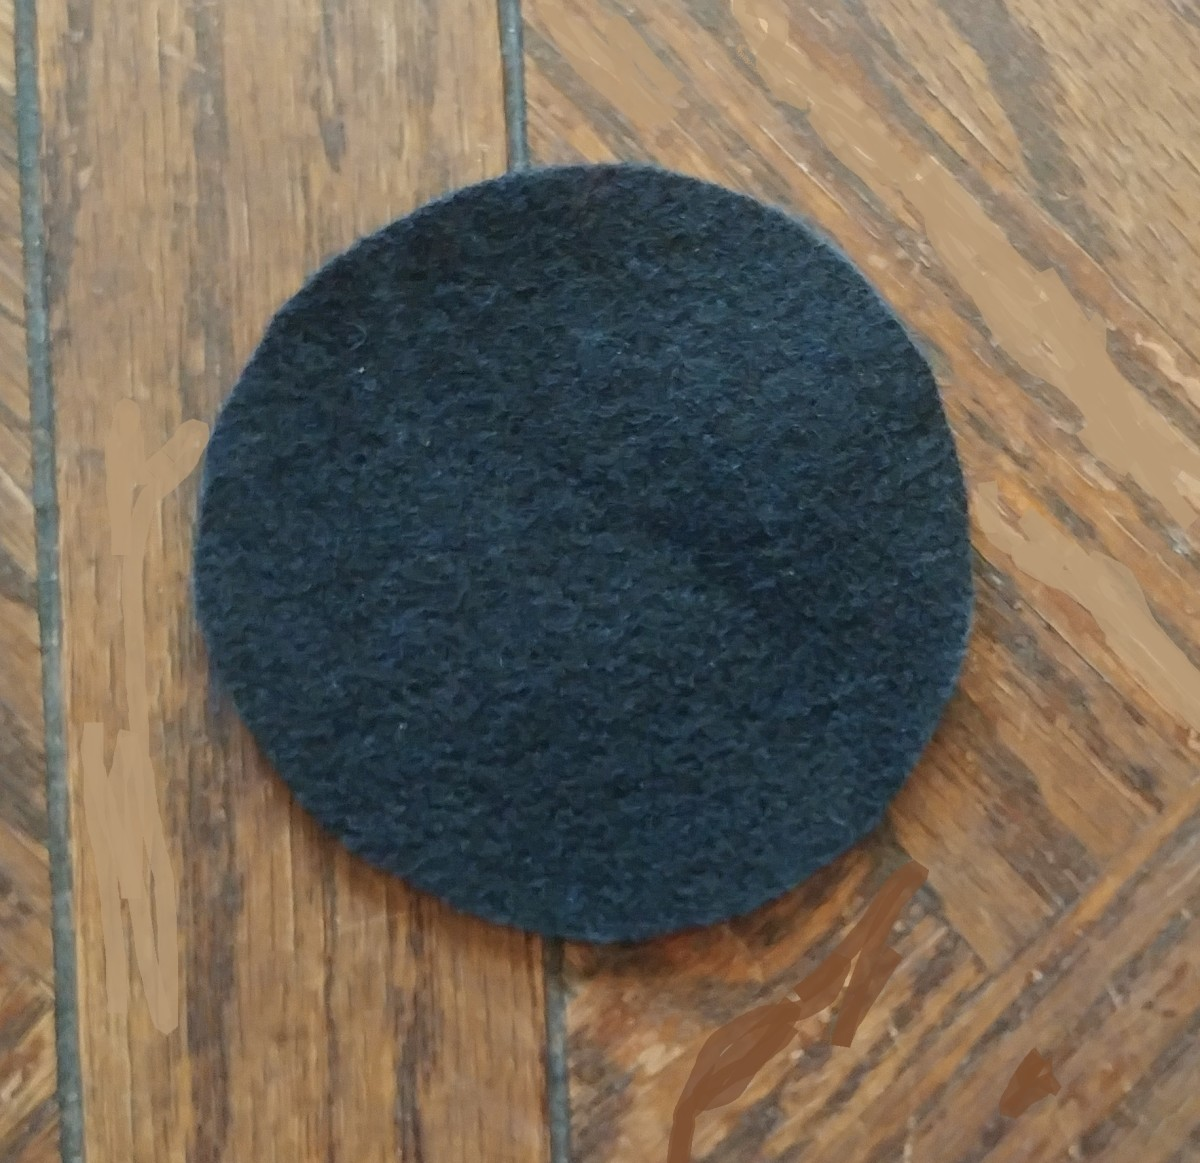 Cut a circle out of black felt. A mason jar lid is a good size to measure the shape.